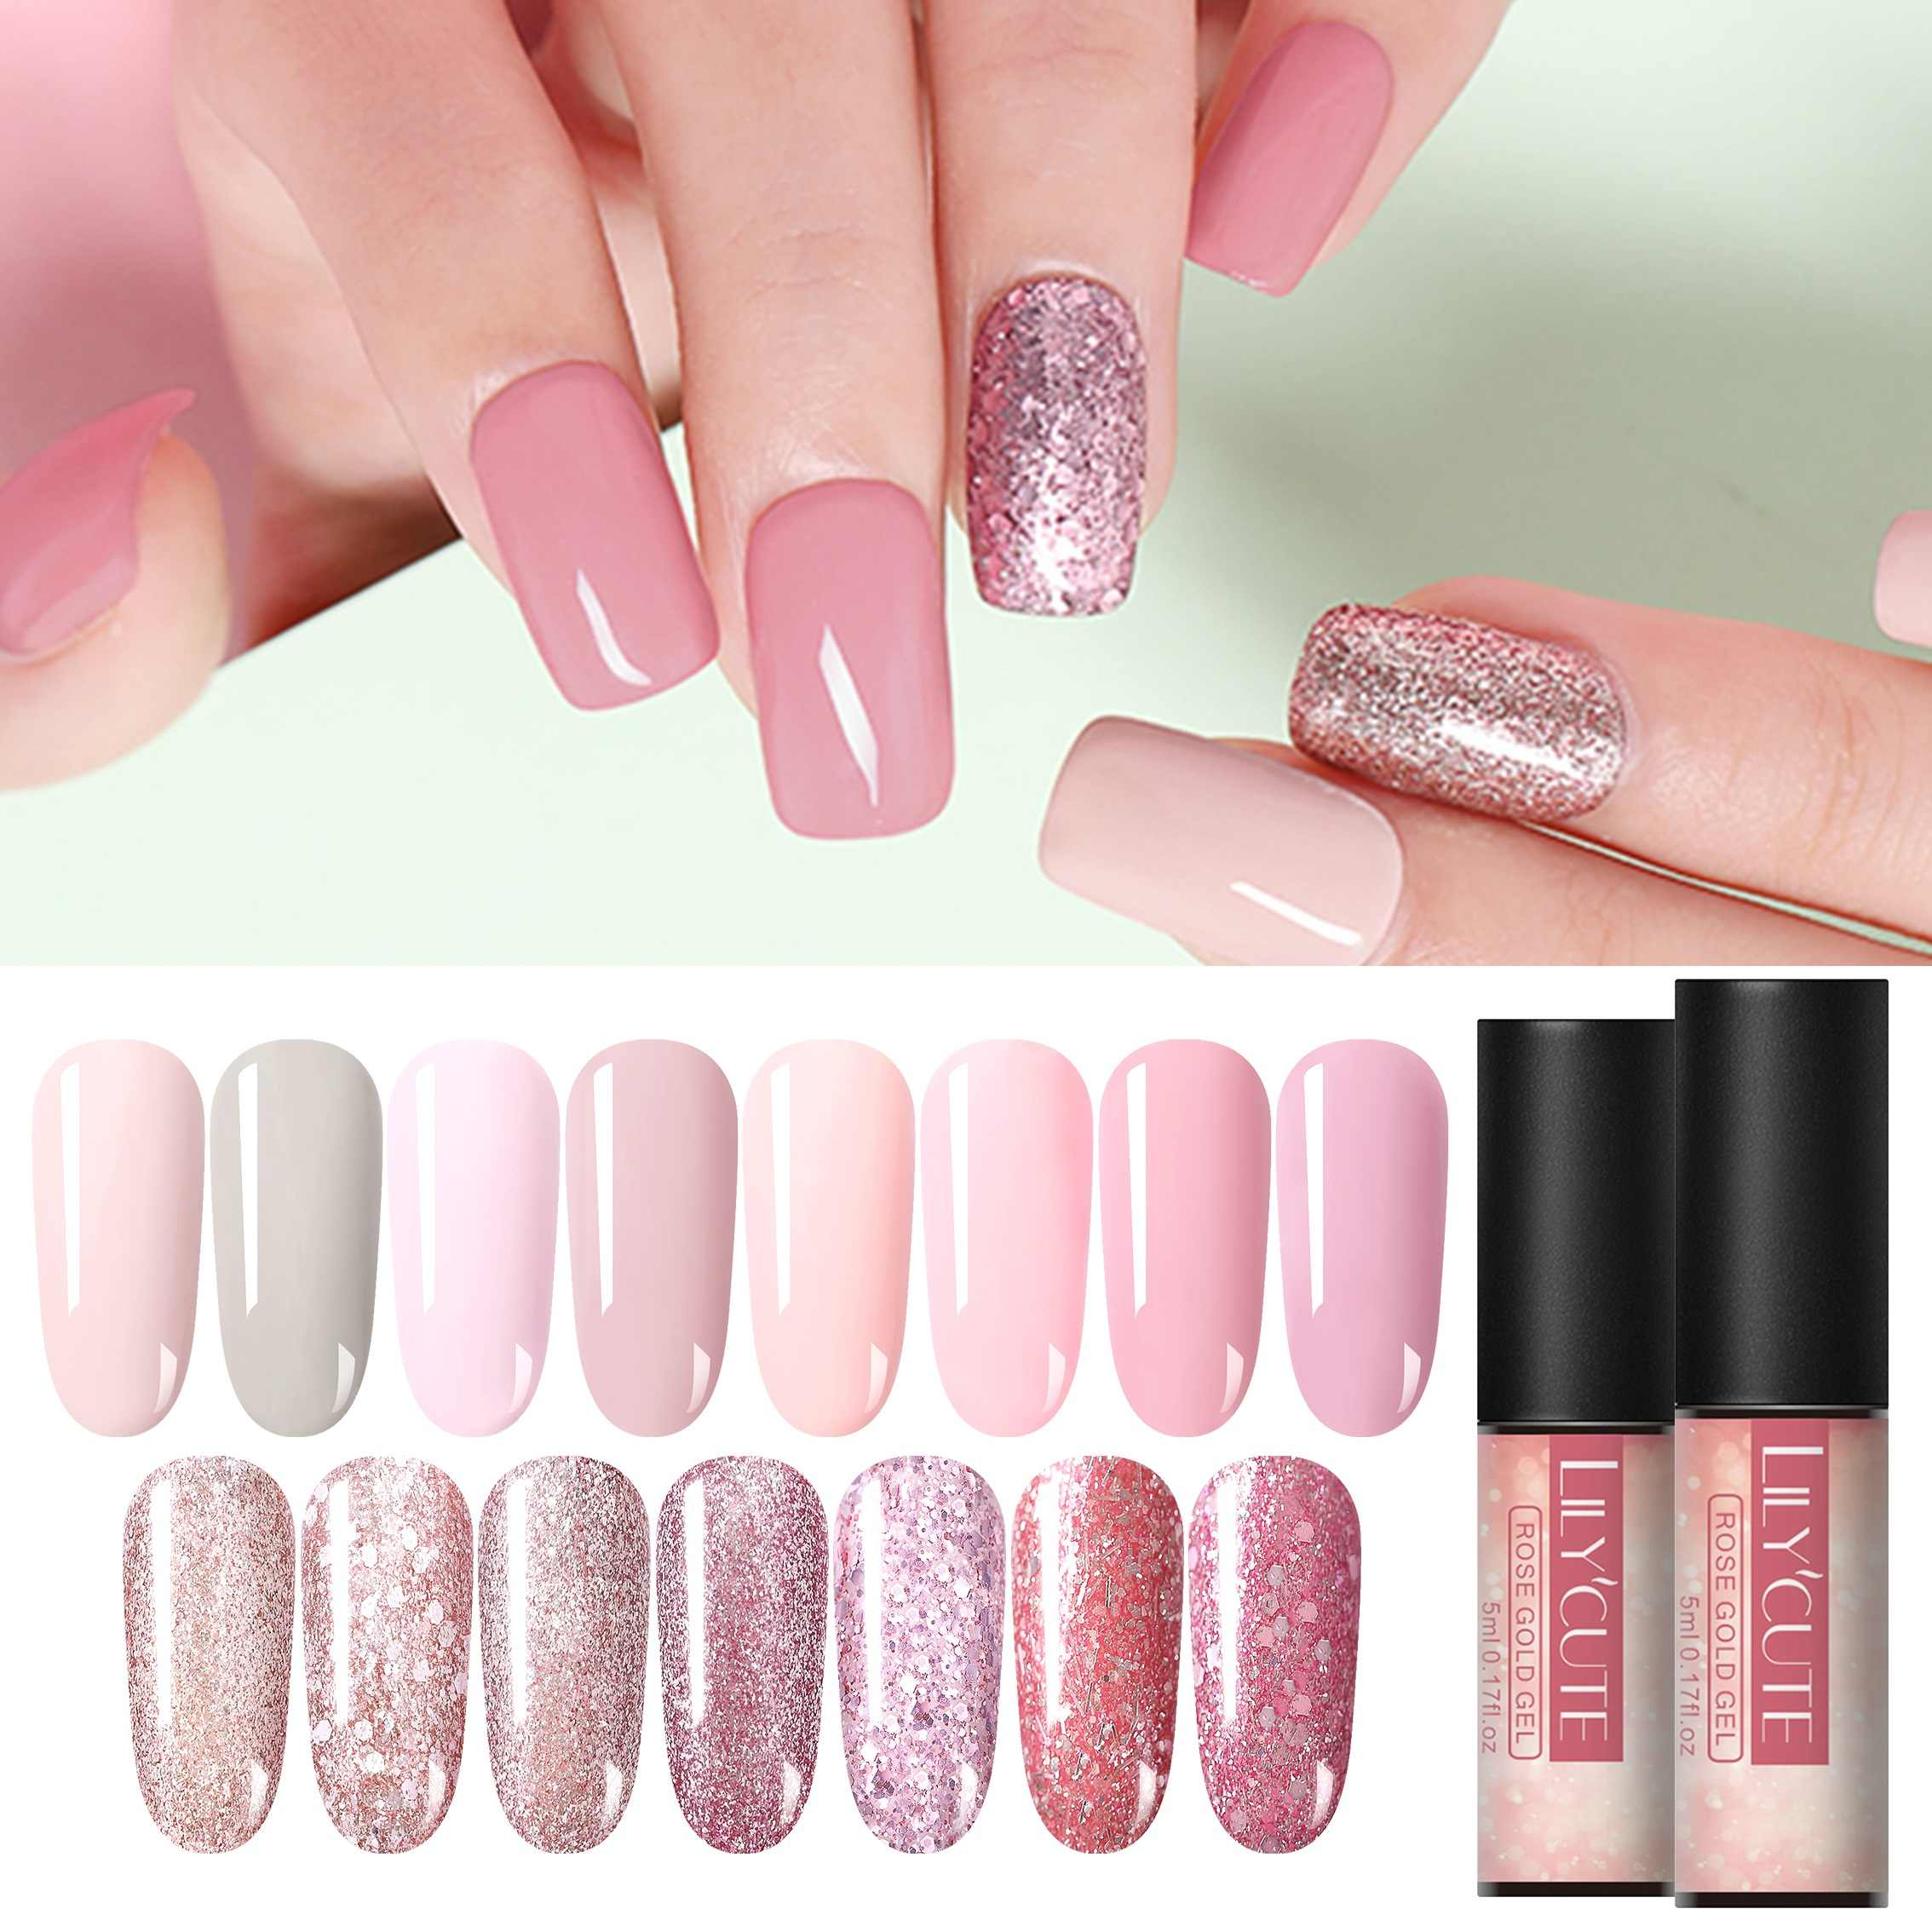 Lilycute Rose Gold Uv Gel Polish Soak Off Glitter Pailletten Nagellak Langdurige Losweken Glanzende Uv Gel Polish nail Art Gel